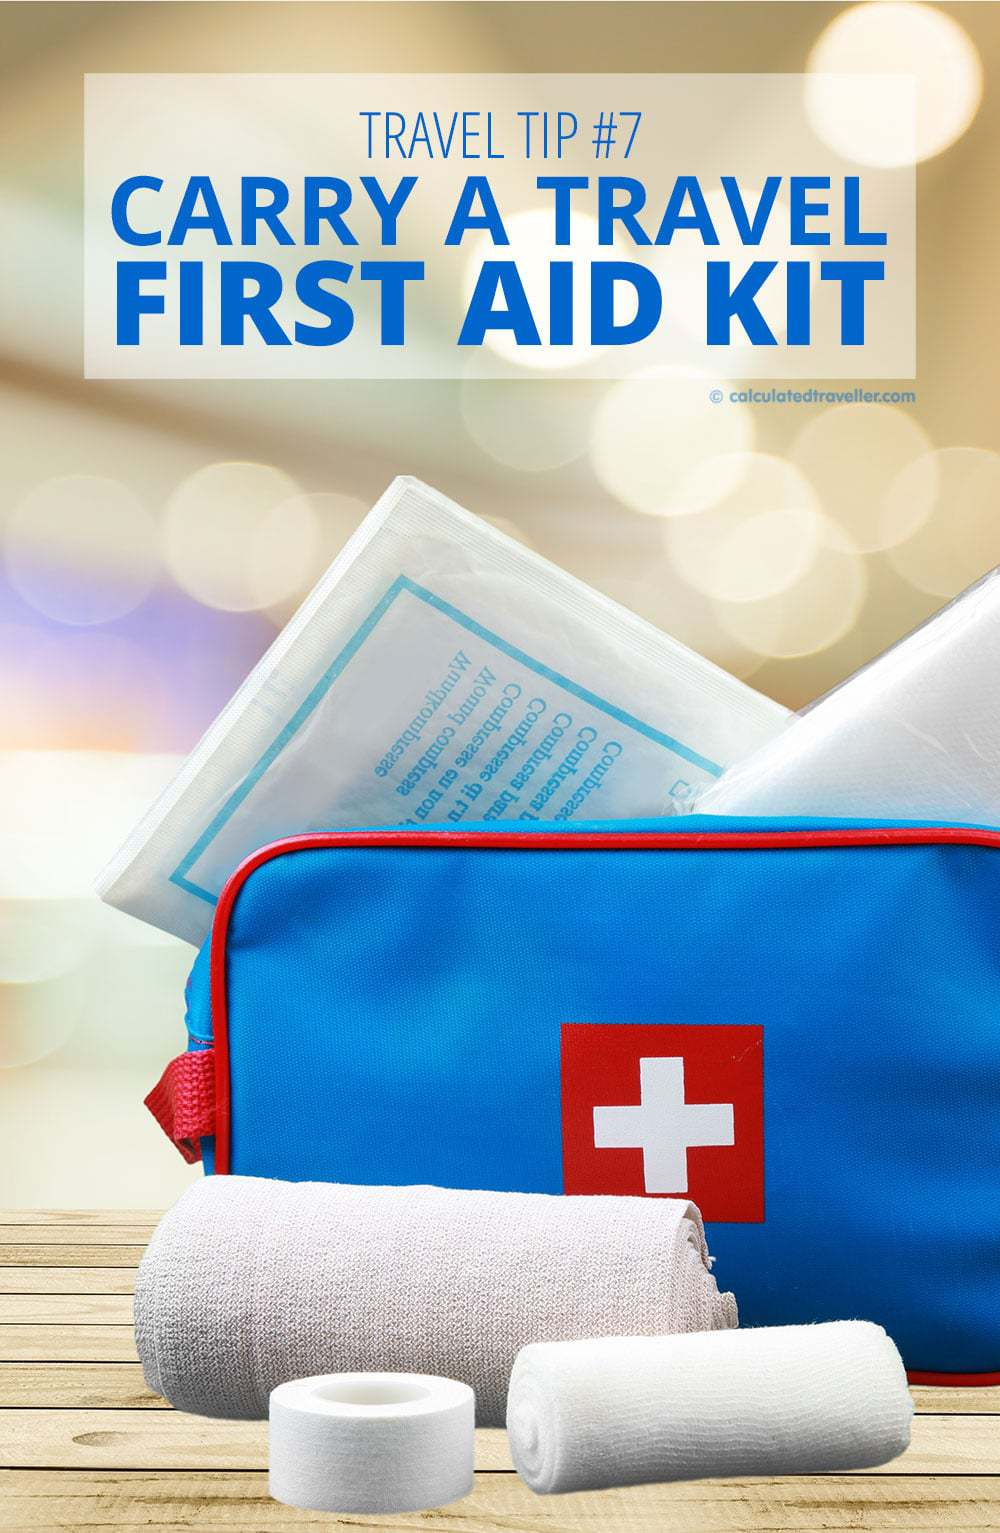 Calculated Traveller Travel Tip #7: Carry a Travel First Aid Kit